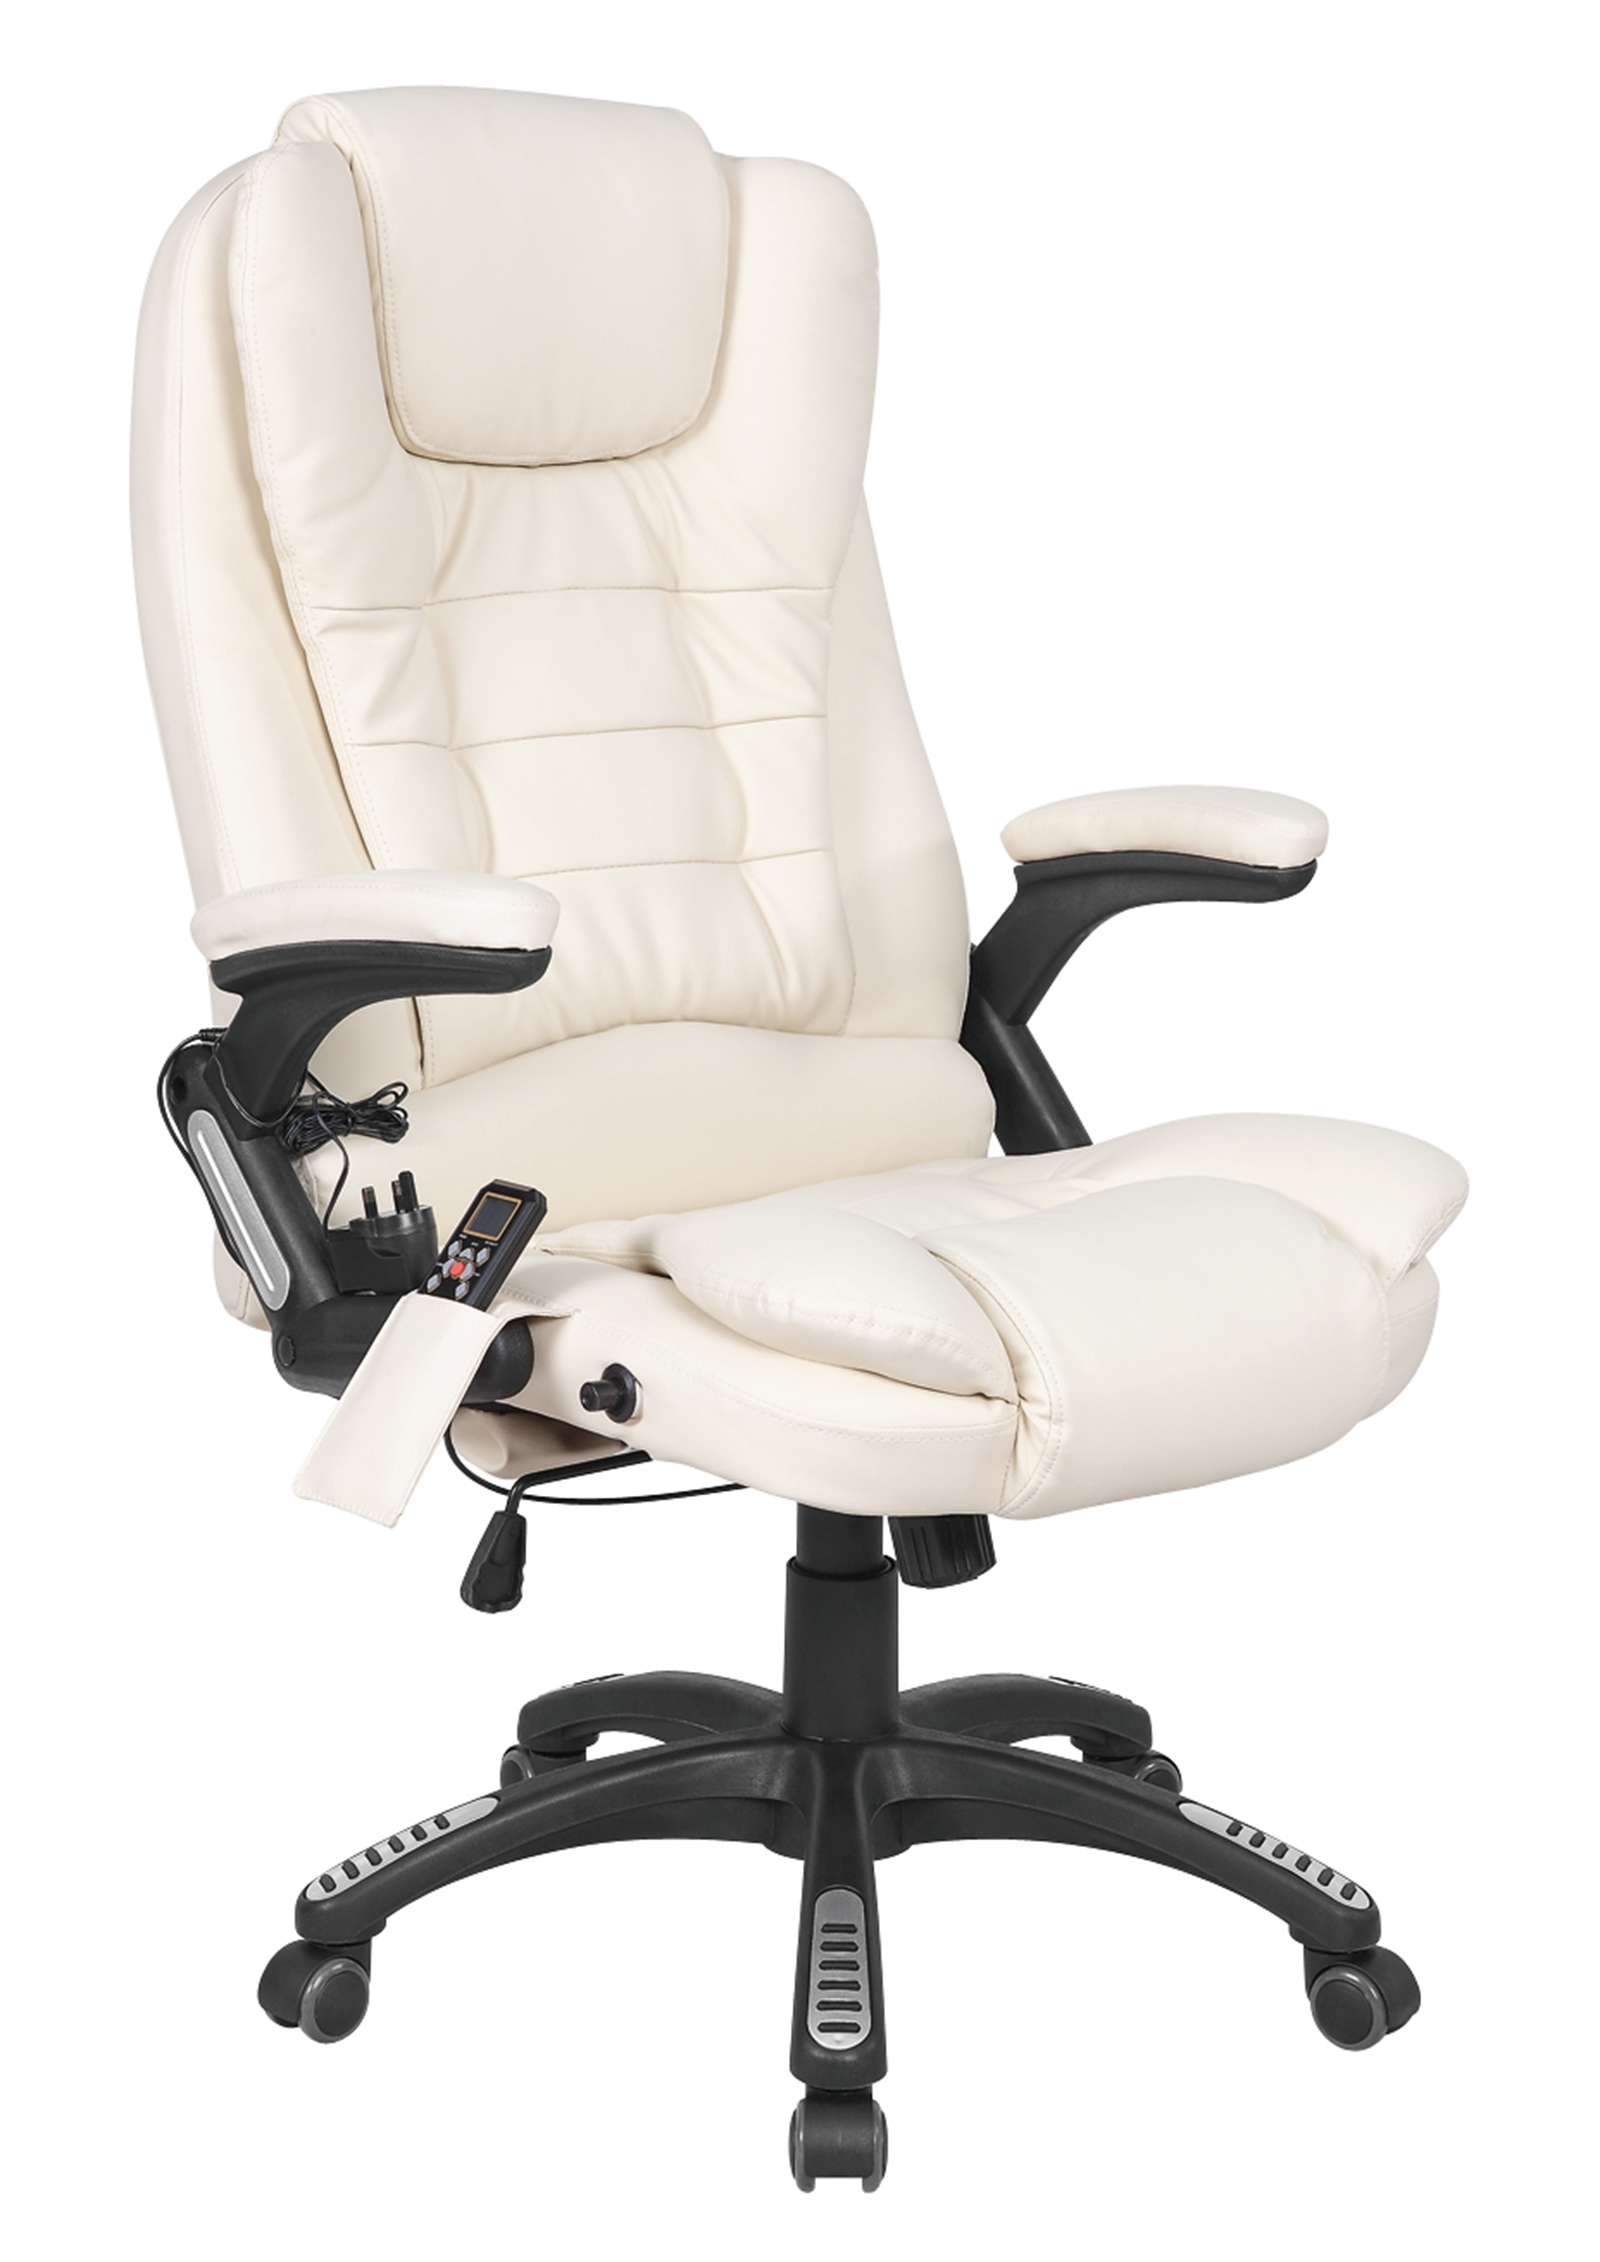 Luxury Office Chair Foxhunter Cream Luxury Leather 6 Point Massage Office